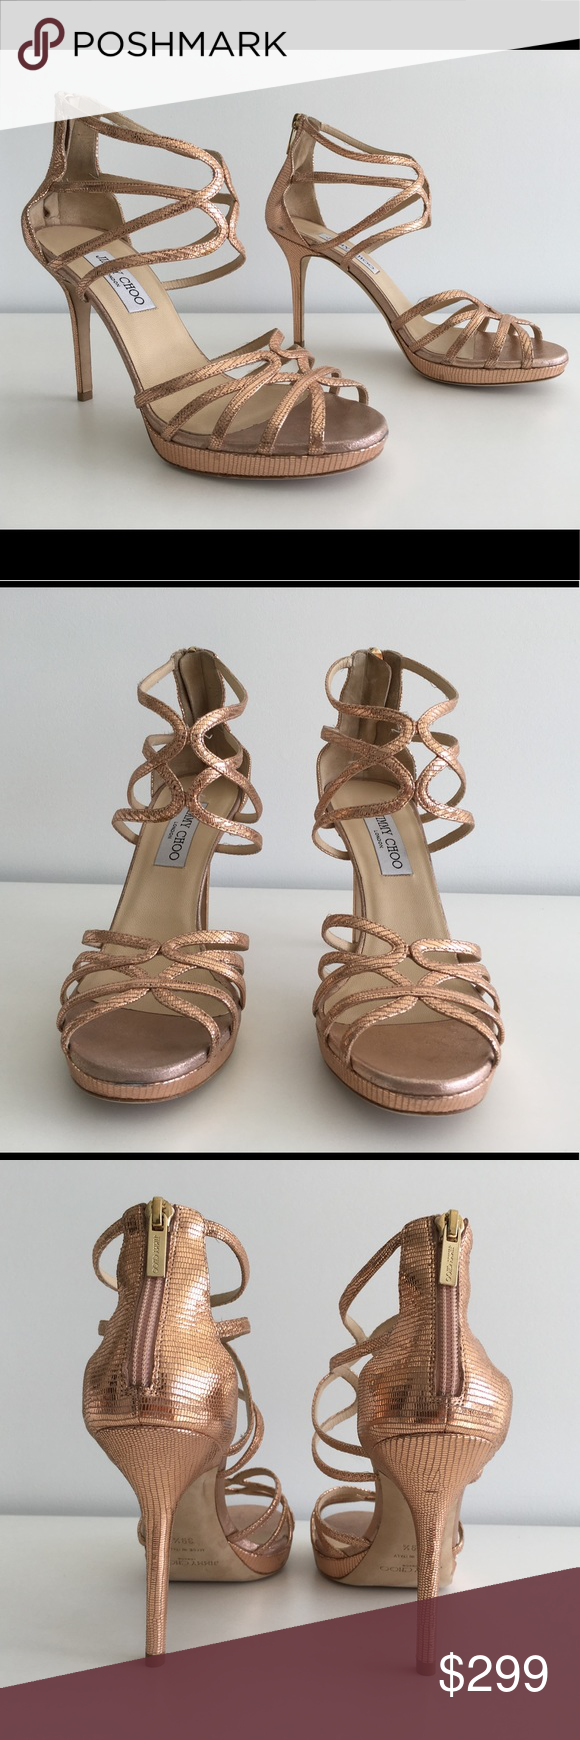 "JIMMY CHOO BLUSH PINK METALLIC ELAPHE HEEL SANDALS -Condition: Brand New Store Display Shoes With Box + Dust Bag. -Minor scuffs on the back heel due to store handling. -Please refer to pictures for further details. -Size: EU 39.5 (Insoles measure 10.5""). -Color: Blush Pink. -Metallic elaphe suede upper. -The slender straps slink up the foot in a pretty curve design on these shimmering sandals.  -Heel measures 4"" / 100mm. -Platform: 0.5"". -Leather lining; Leather soles. -Made in Italy…"